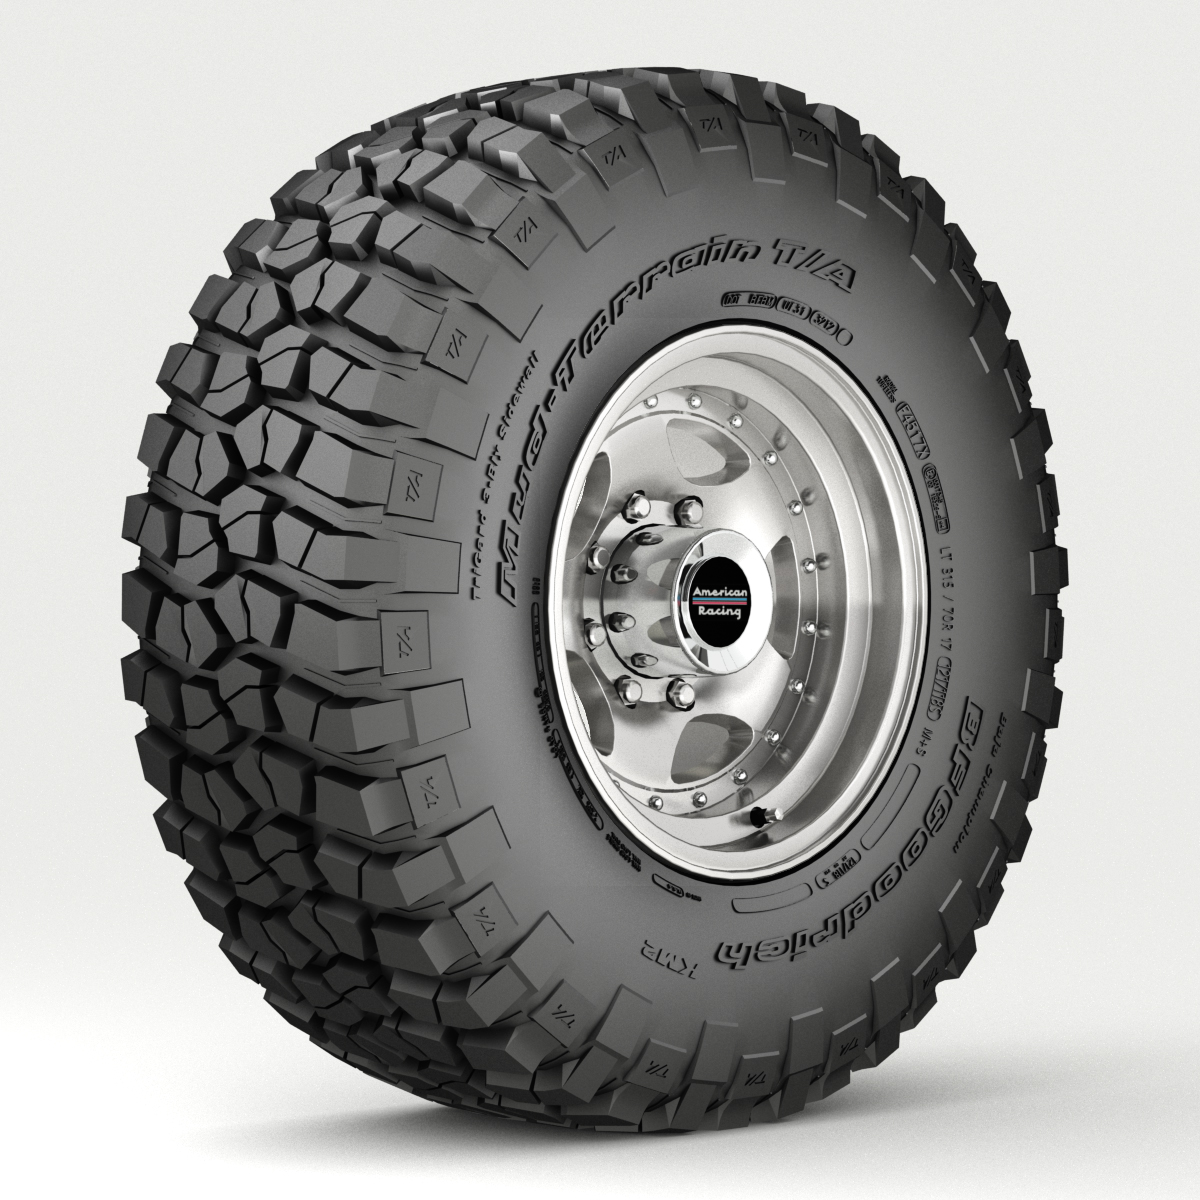 off road wheel and tire 3 3d model 3ds max fbx tga targa icb vda vst pix obj 224446